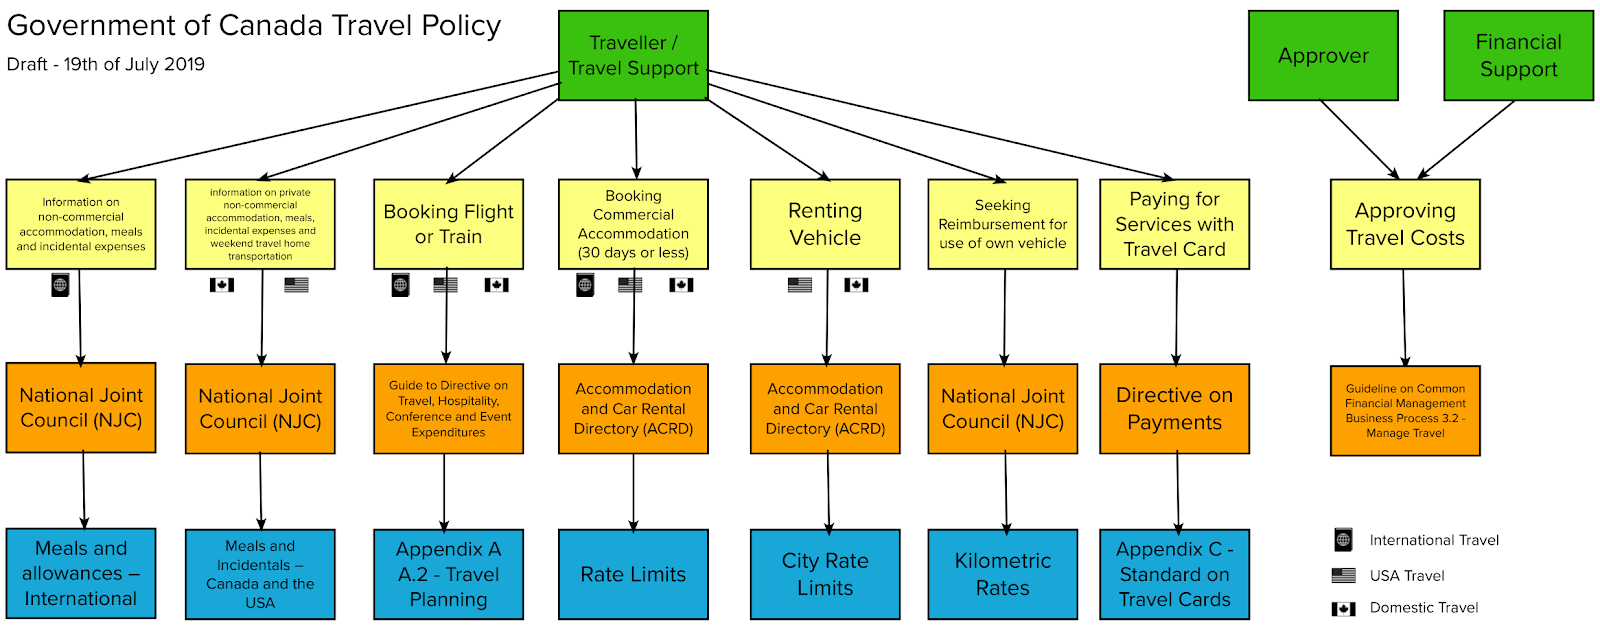 A flow chart that shows roles, activities and policies